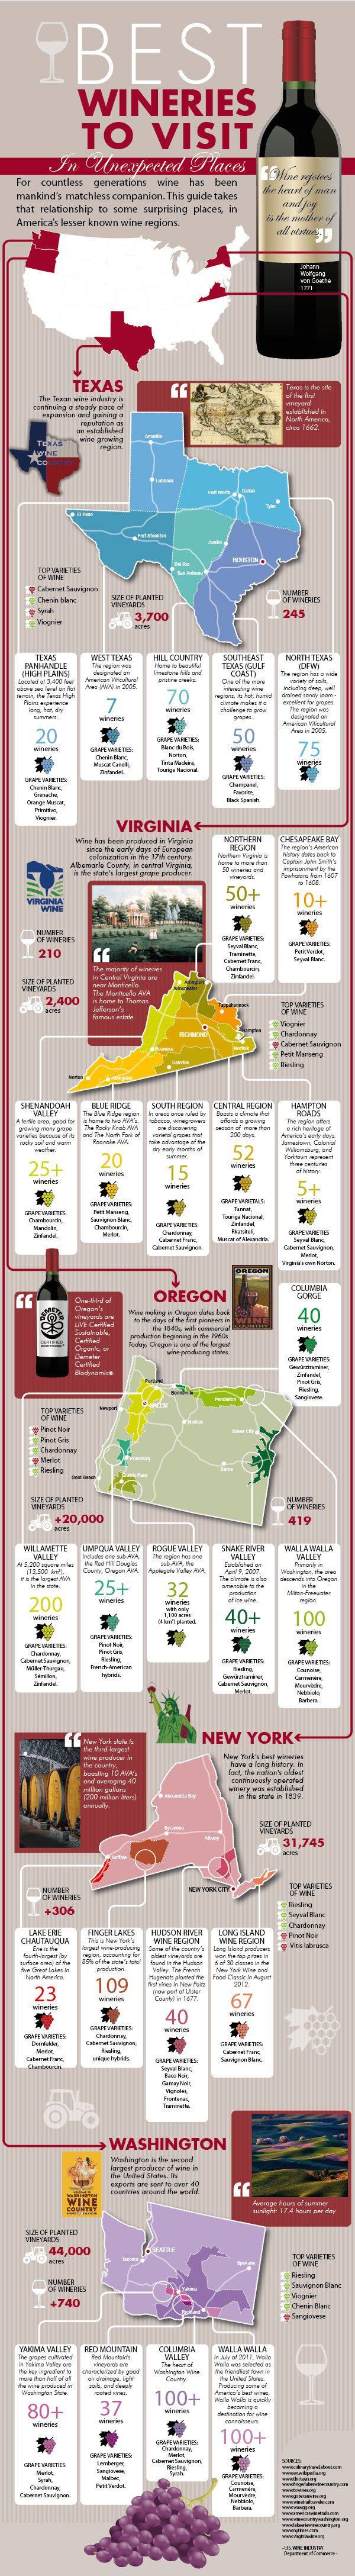 "Wineries in the US - Texas, Virginia, Oregon, New York and Washington wine country  www.LiquorList.com ""The Marketplace for Adults with Taste!"" @LiquorListcom   #LiquorList.com"